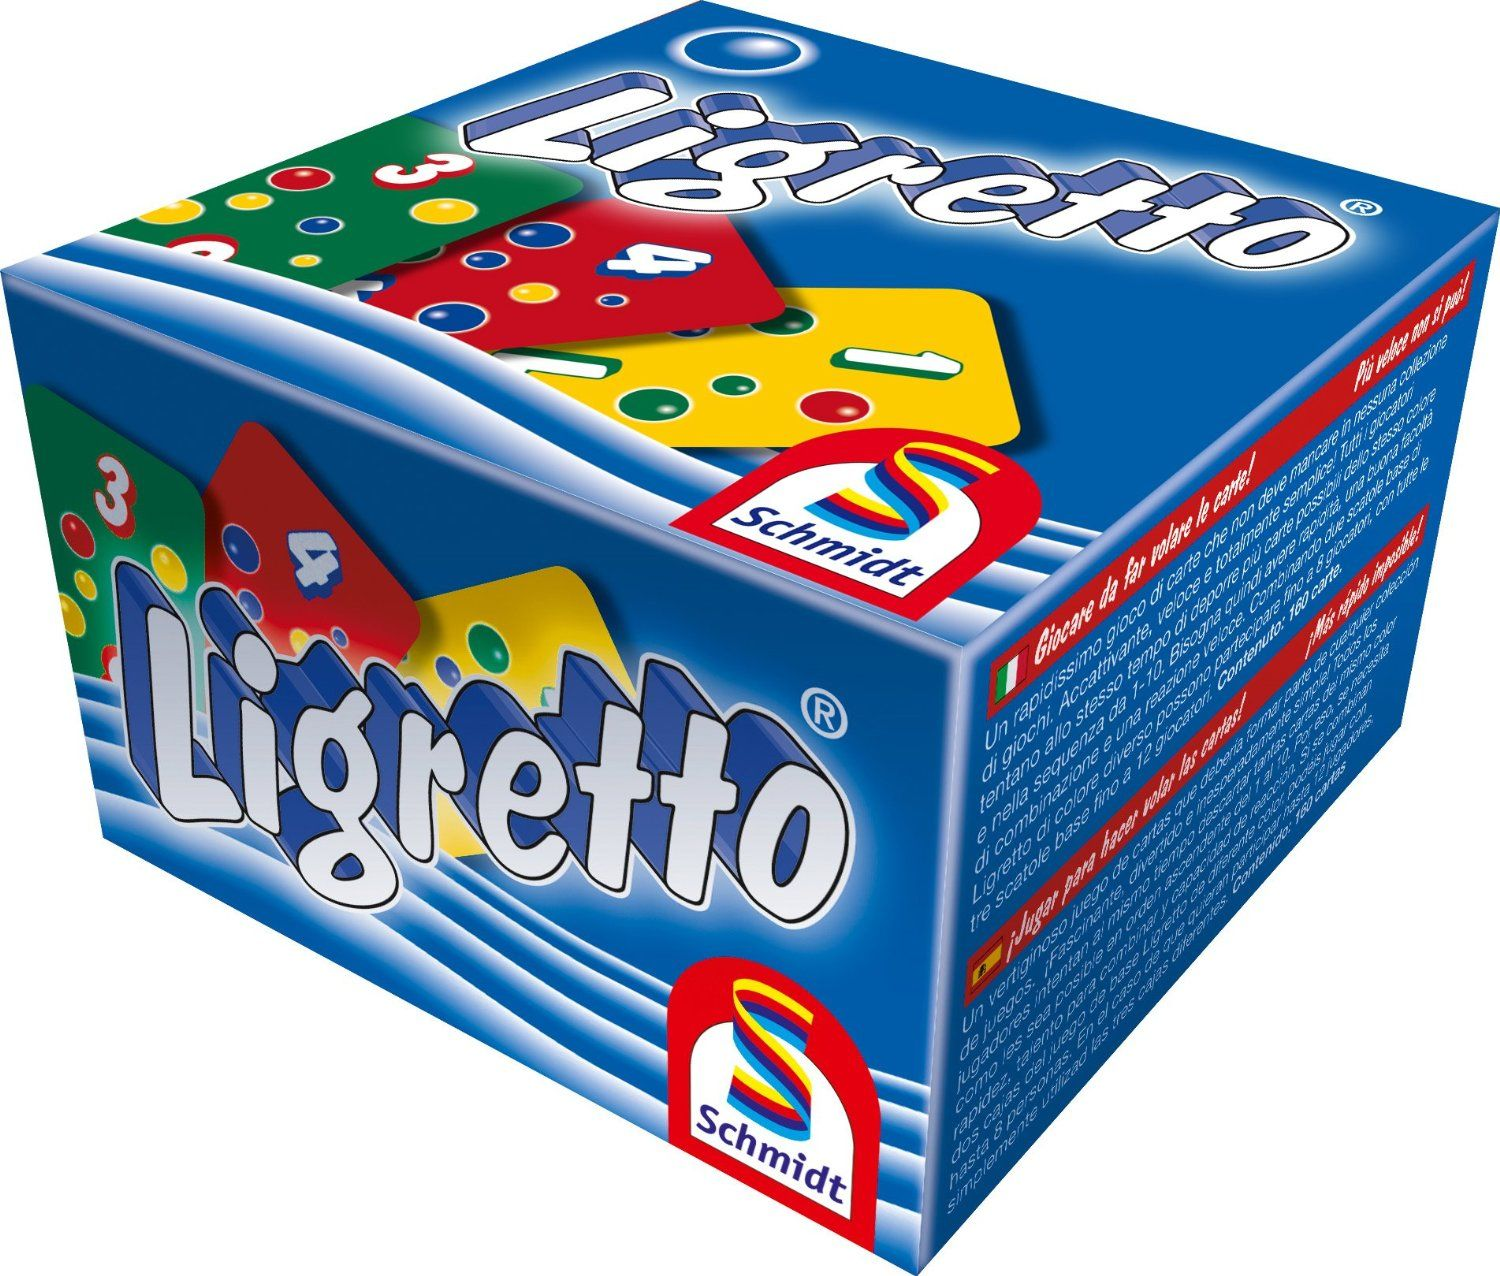 LIGRETTO Blue Edition Fast Paced Card Game by Schmidt.